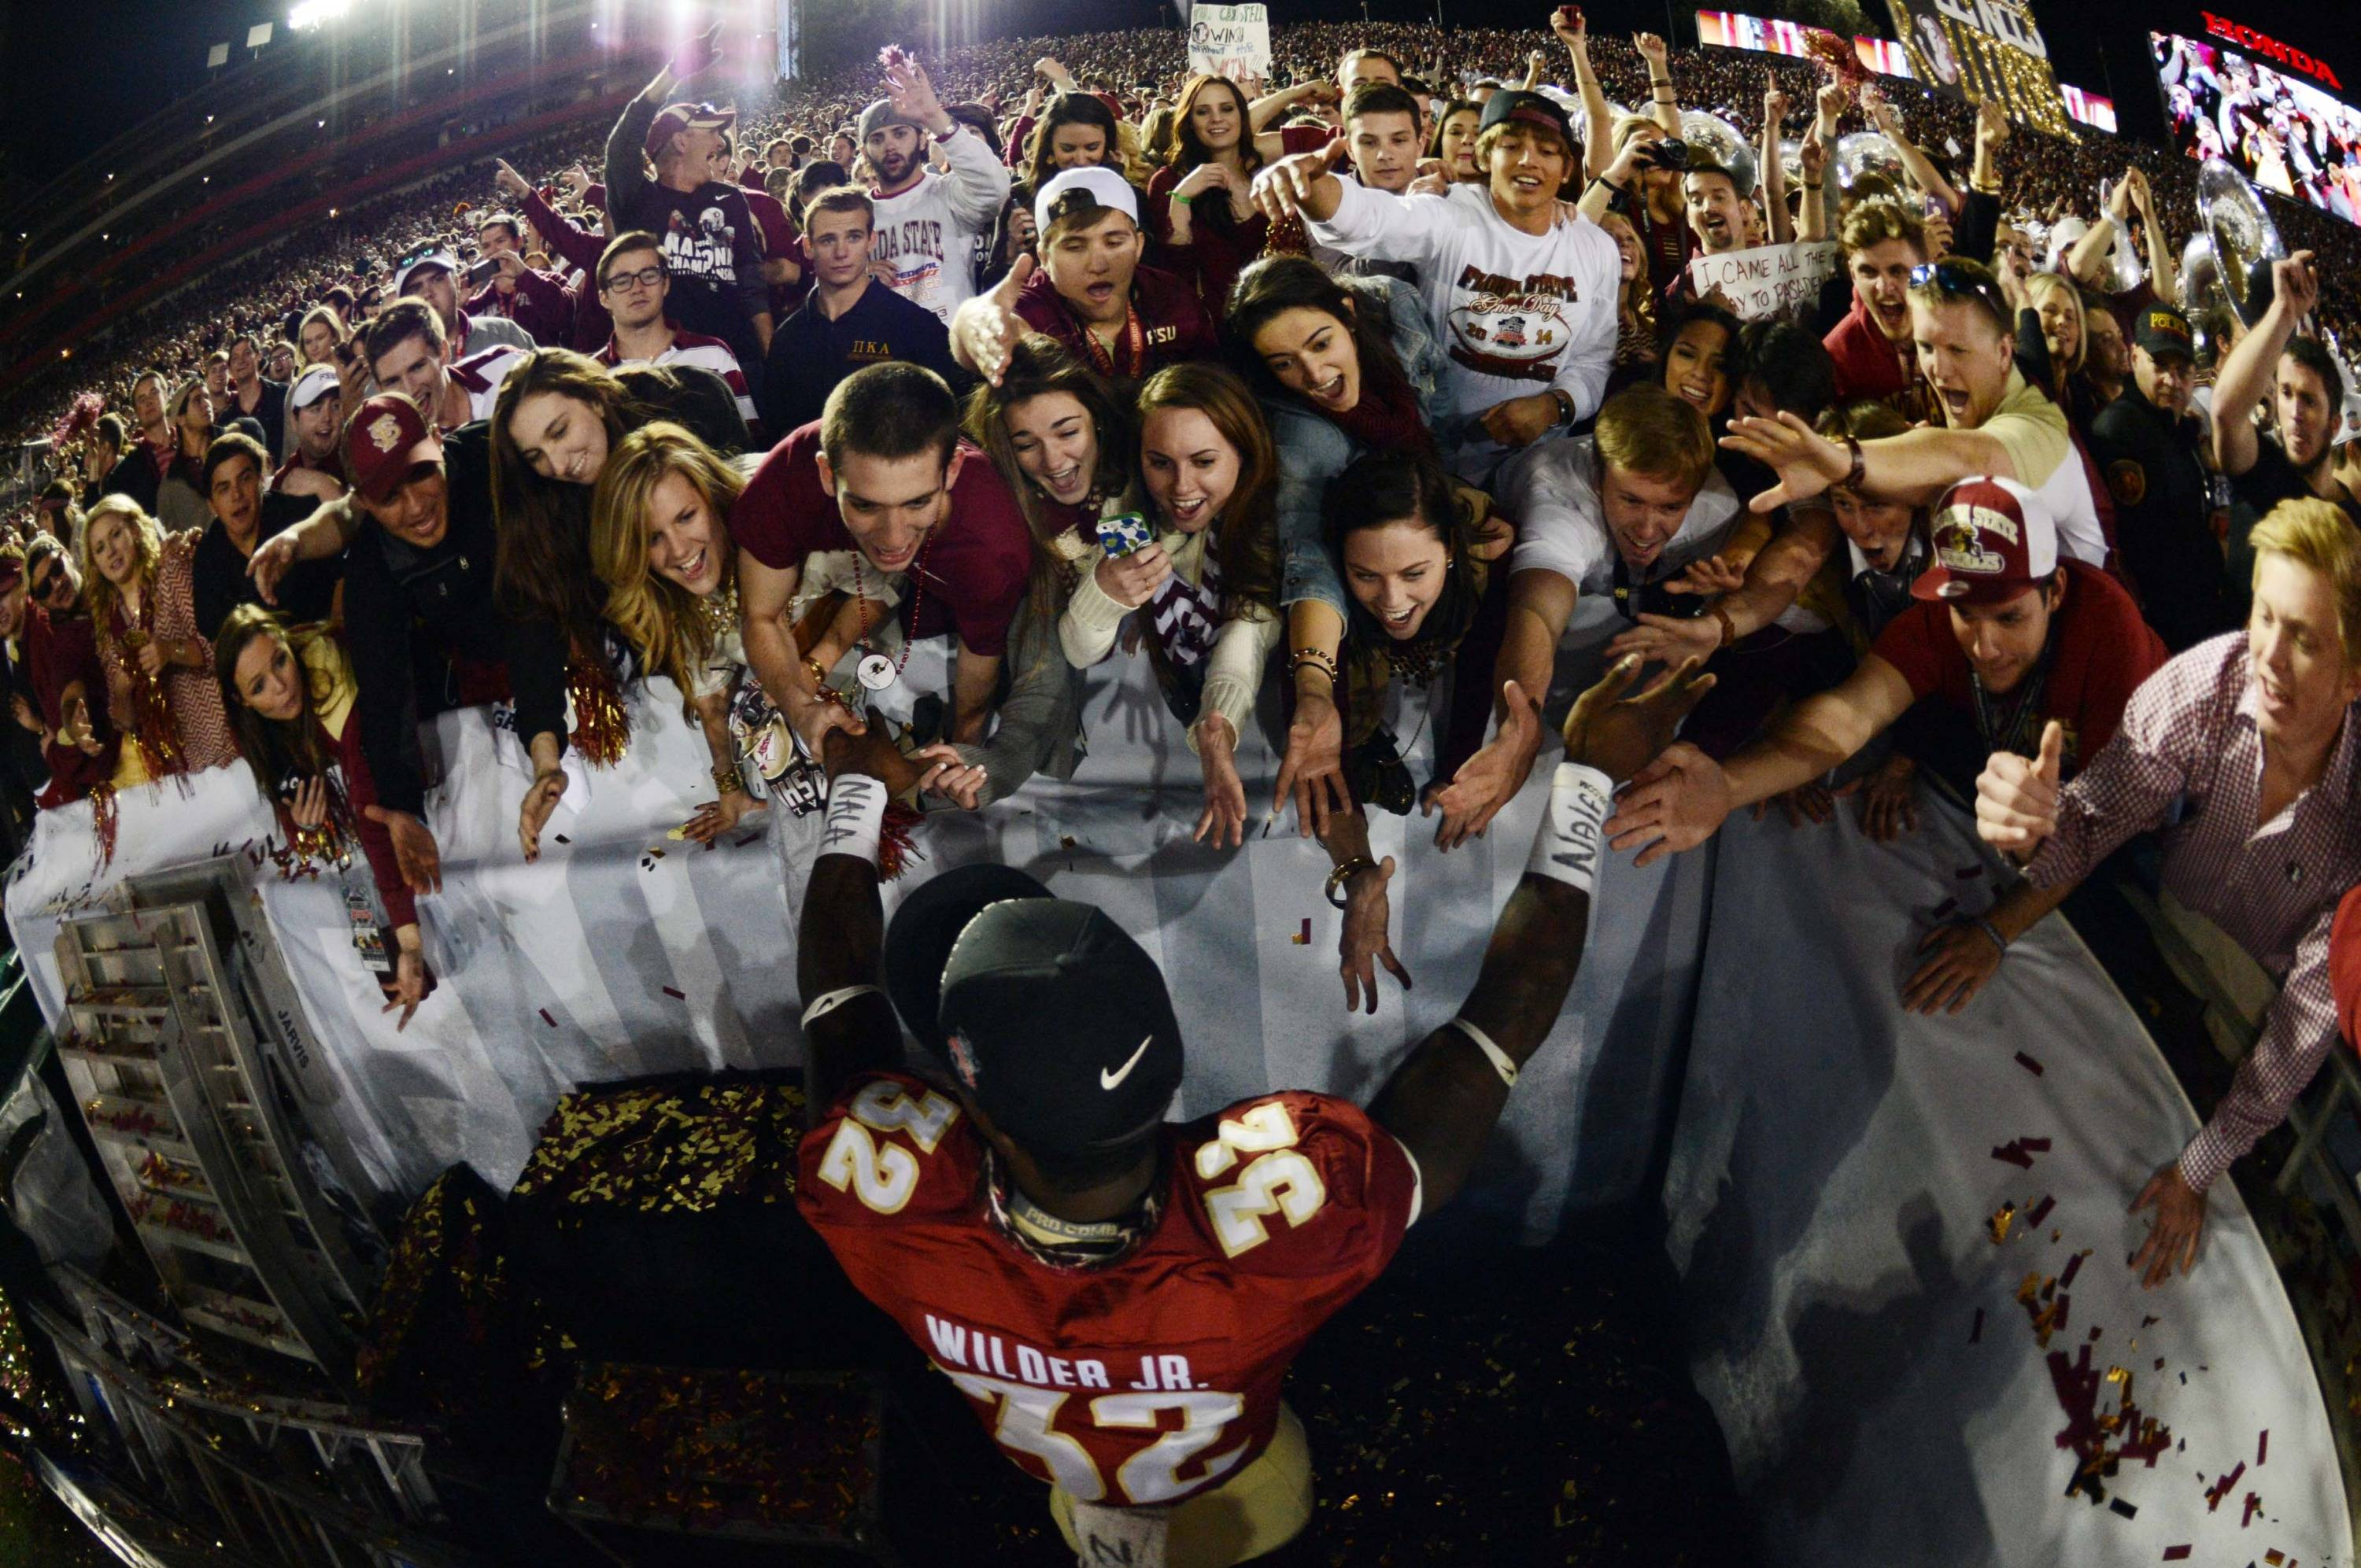 Jan 6, 2014; Pasadena, CA, USA; Florida State Seminoles running back James Wilder Jr. (32) celebrates with fans in the stands after the 2014 BCS National Championship game against the Auburn Tigers at the Rose Bowl.  Mandatory Credit: Jayne Kamin-Oncea-USA TODAY Sports